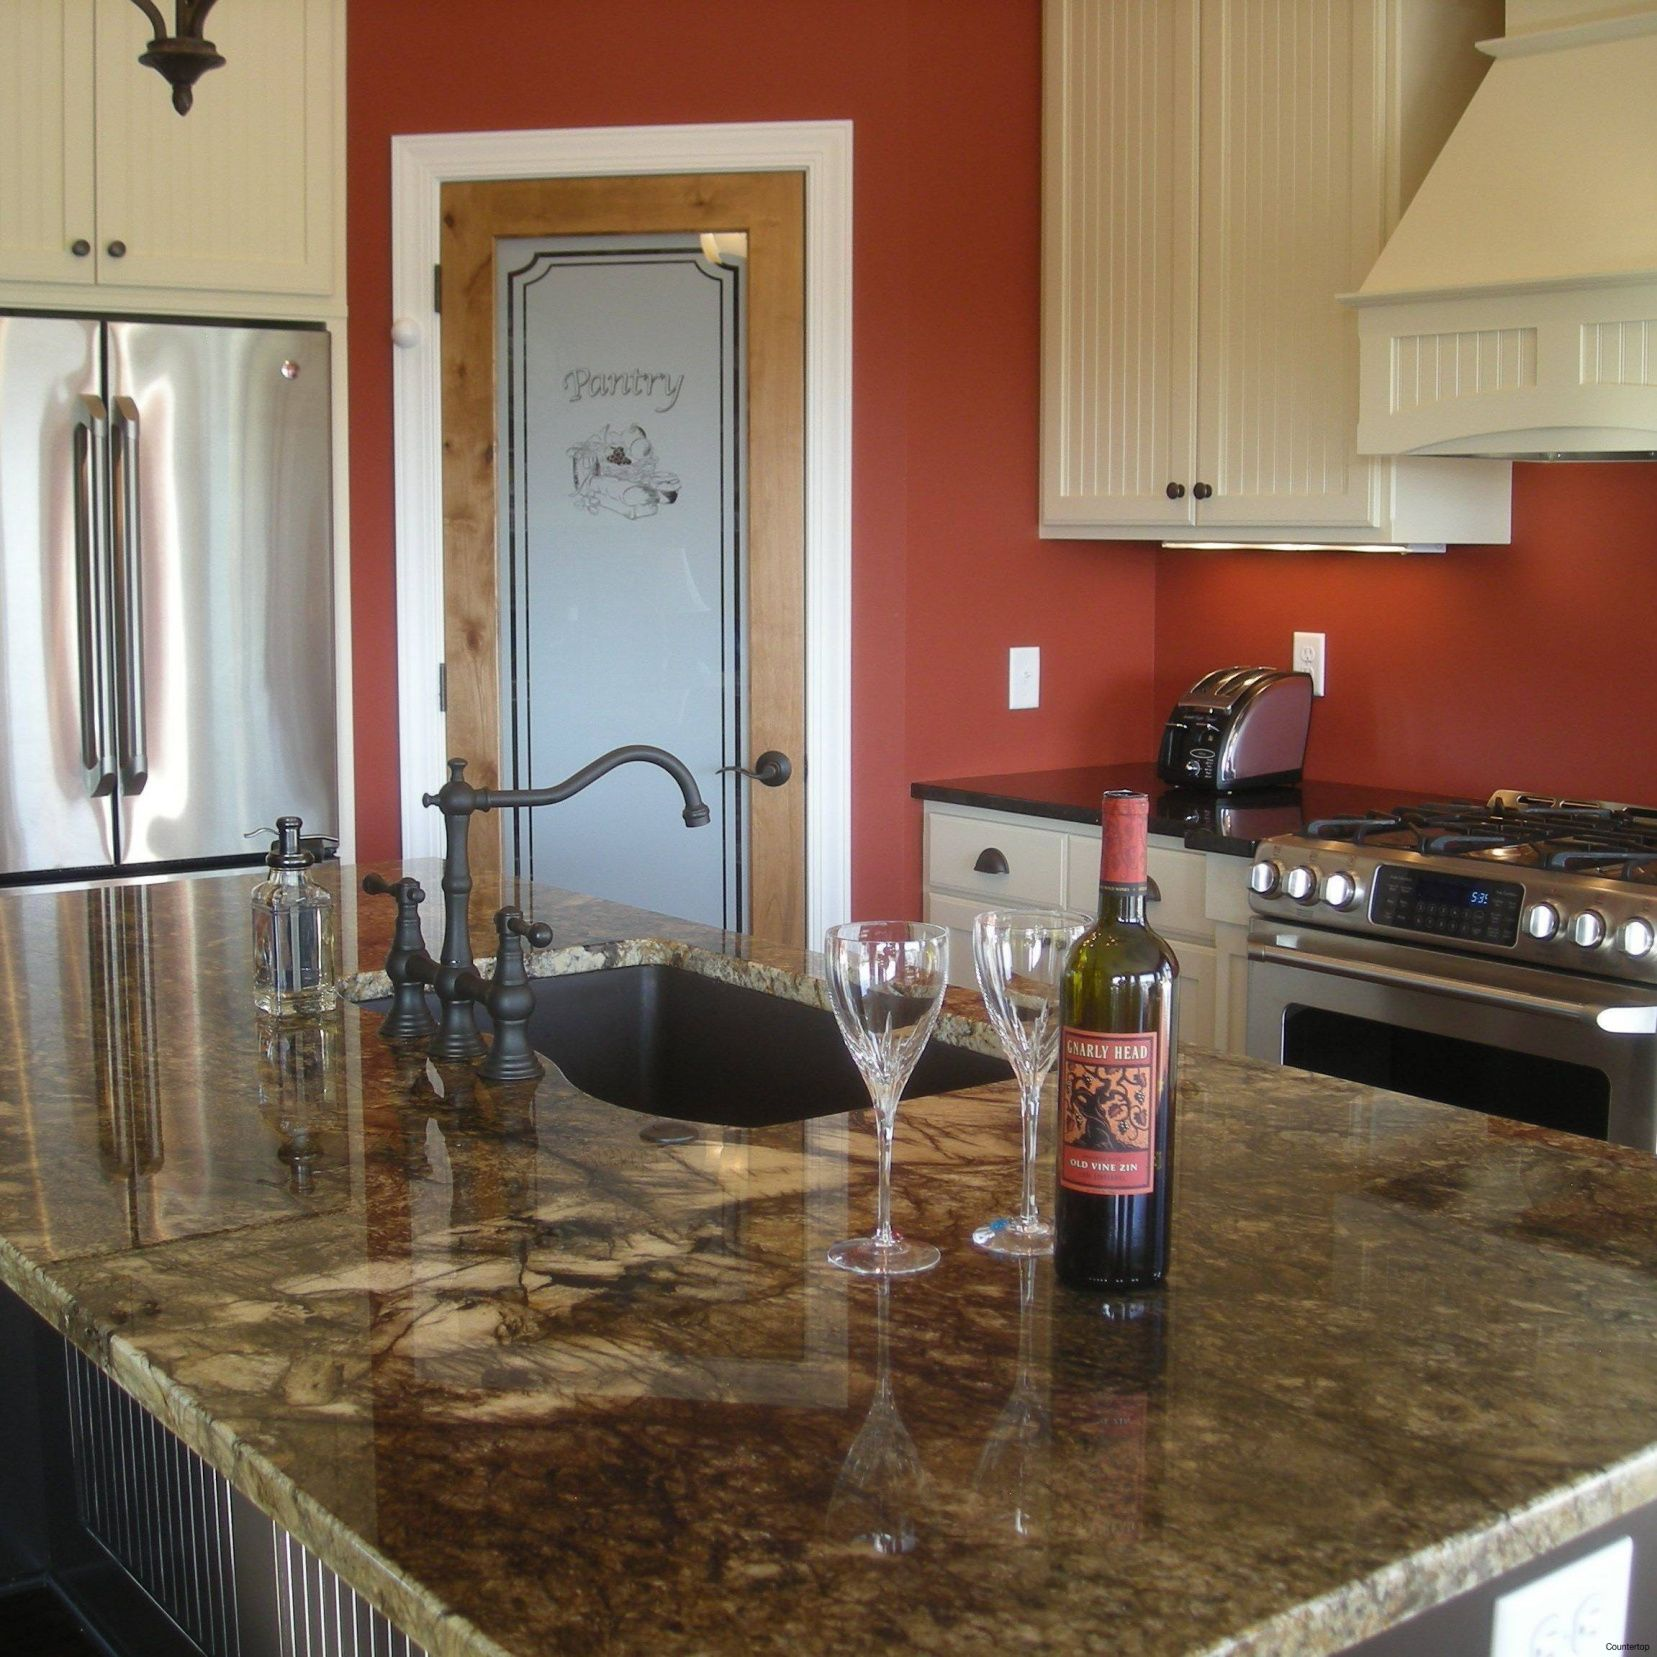 2018 Granite Countertops Syracuse Ny Remodeling Ideas For Kitchens Check More At Http Mattinglyb Countertops Granite Countertops Granite Countertops Colors